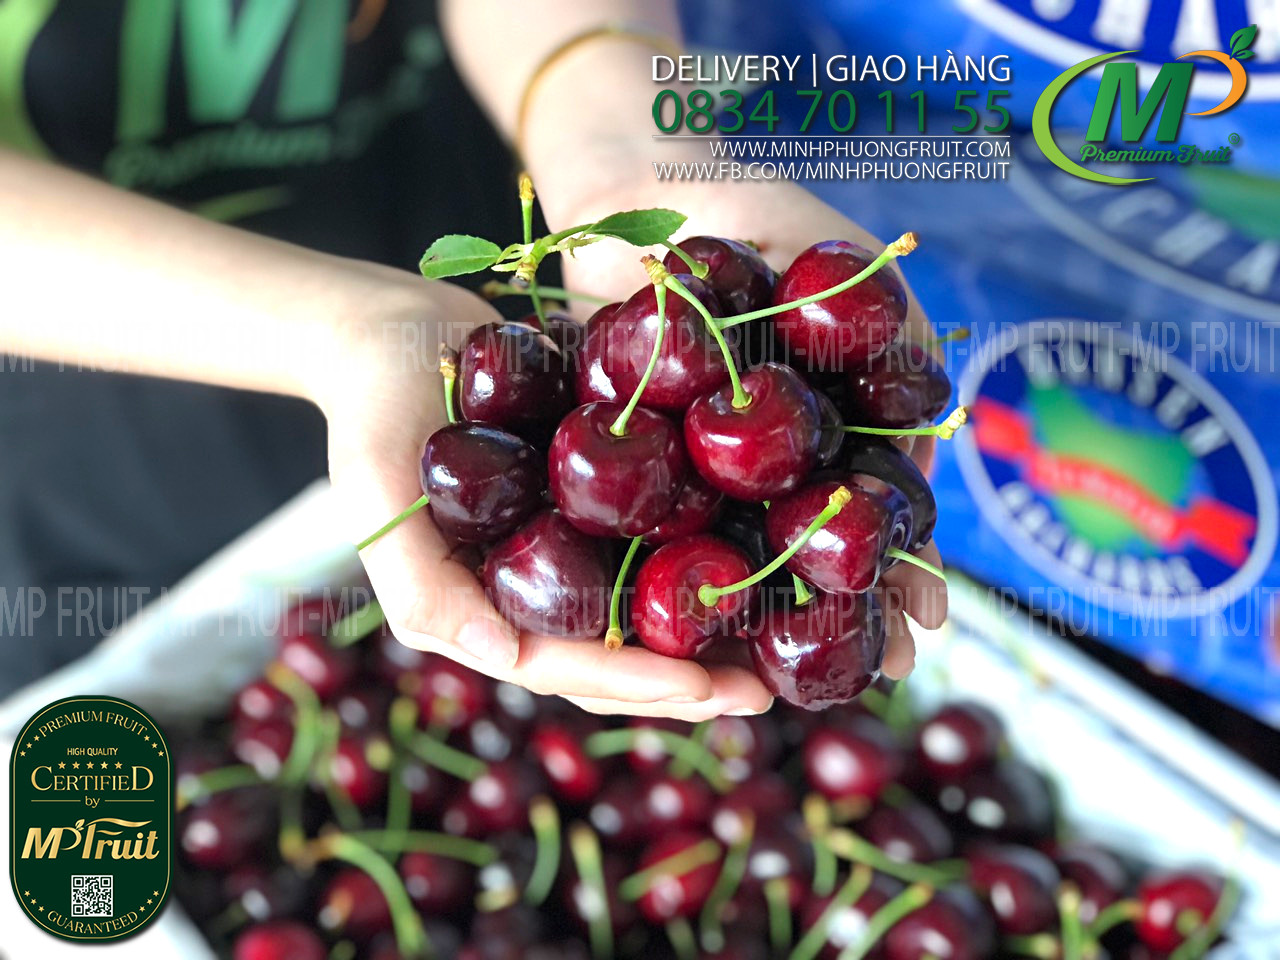 Cherry Đỏ Tasmania Úc Size 28-30 Hansen Orchards tại MP Fruit